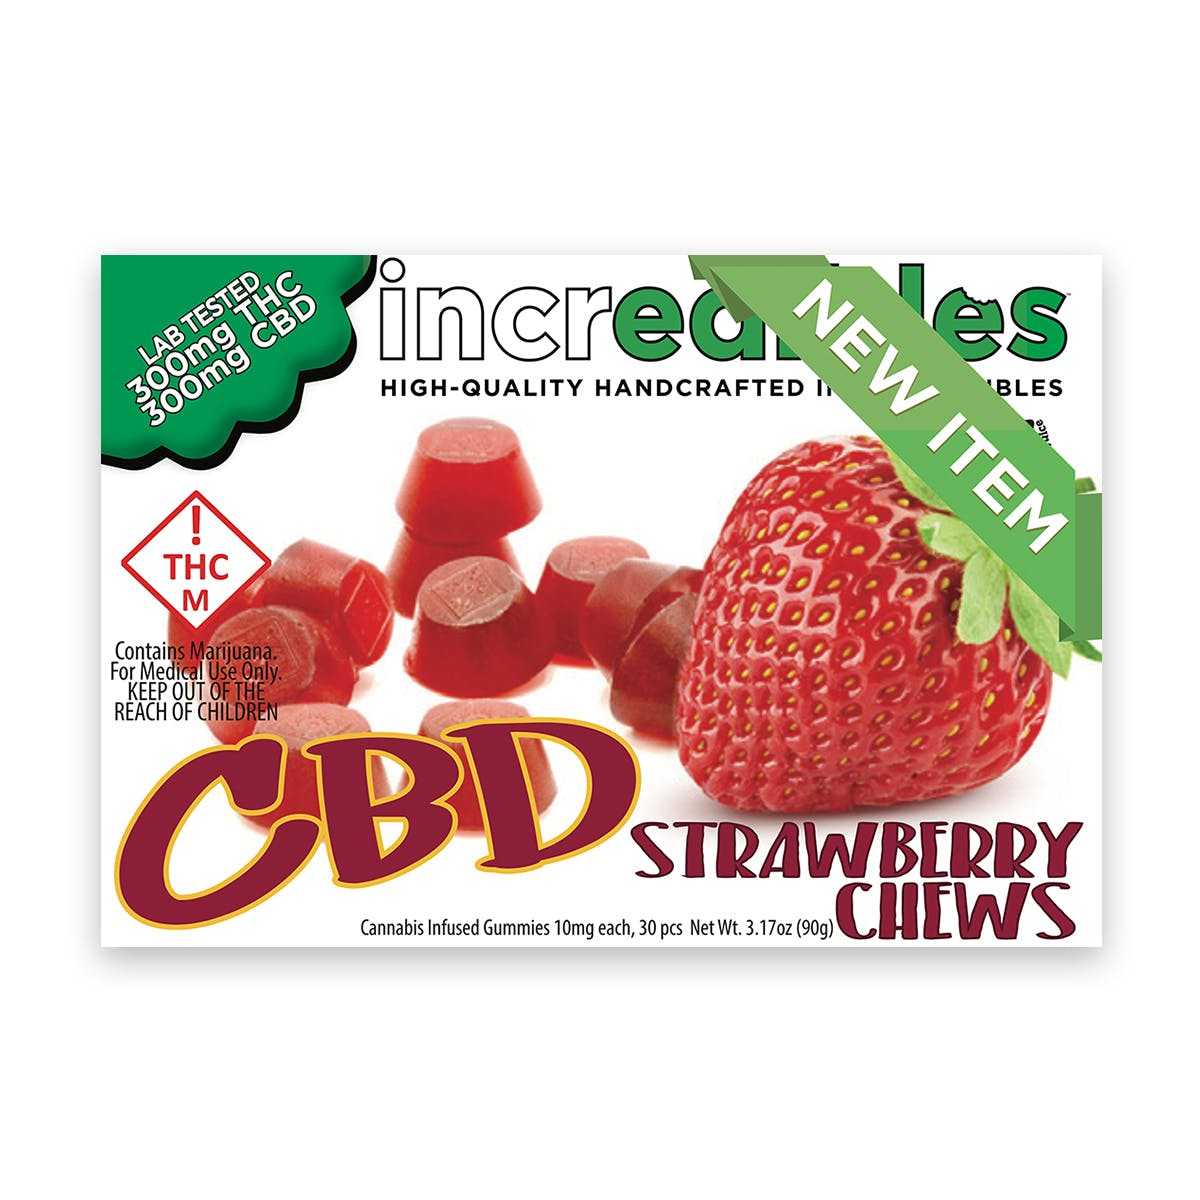 marijuana-dispensaries-high-country-healing-colorado-springs-in-colorado-springs-cbd-strawberry-chews-2c-300mg-11-thccbd-med